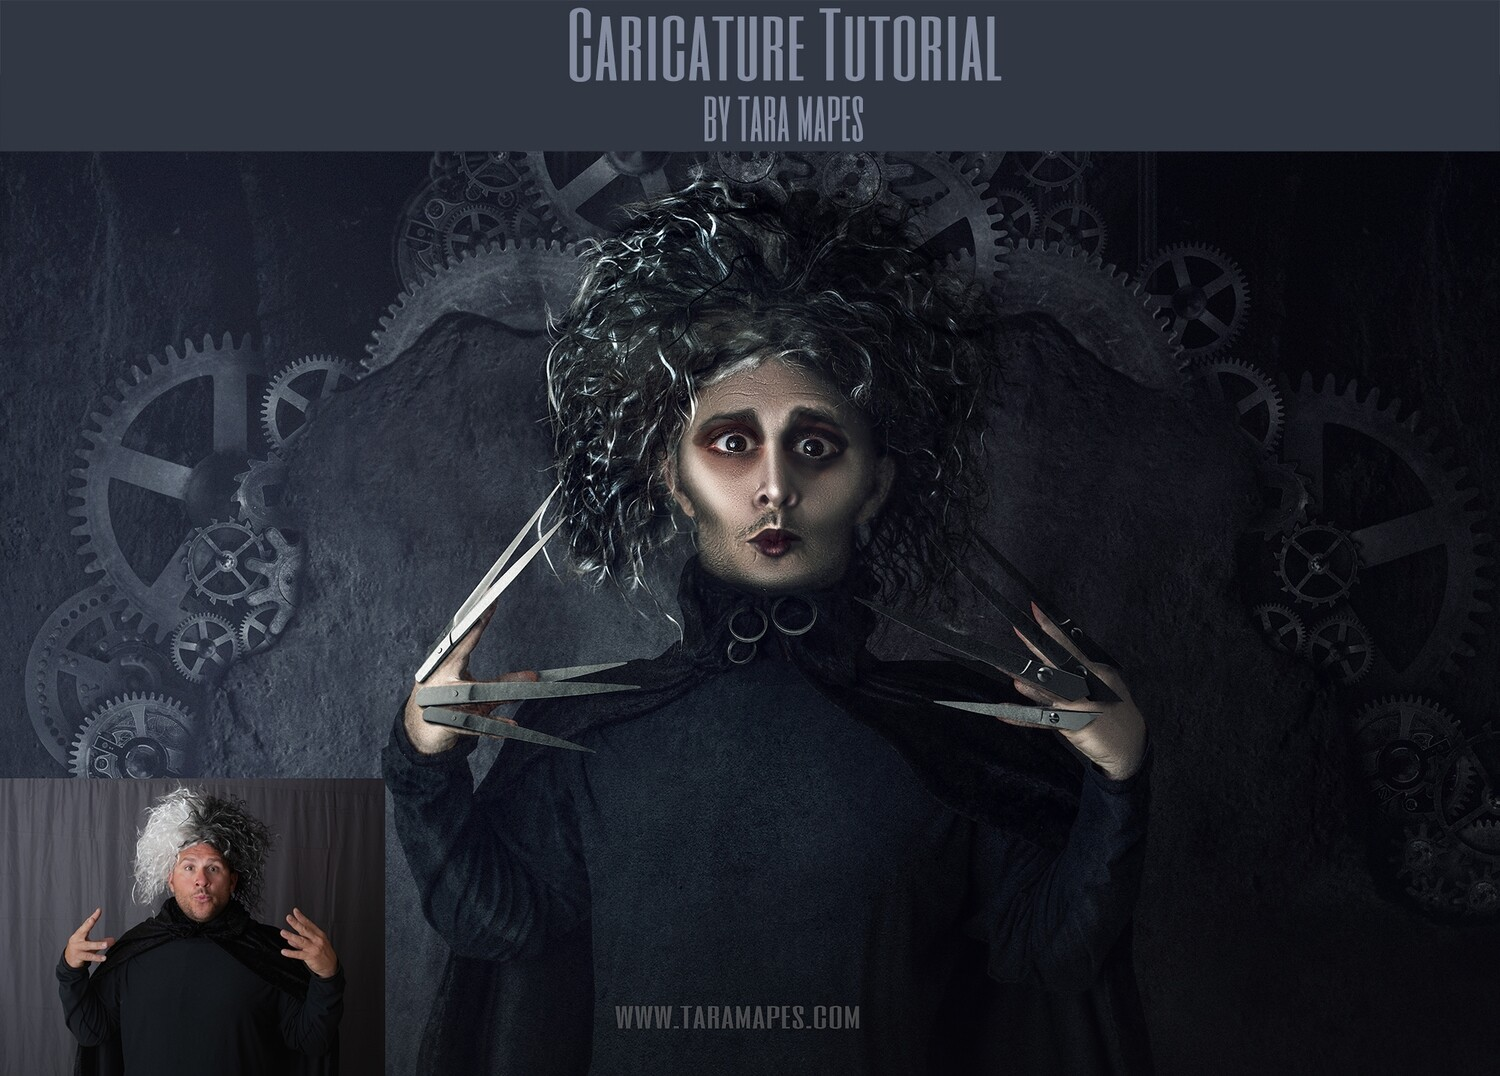 Edward Scissorhands Caricature Tutorial by Tara Mapes - Photomanipulation and Surreal Editing Tutorial